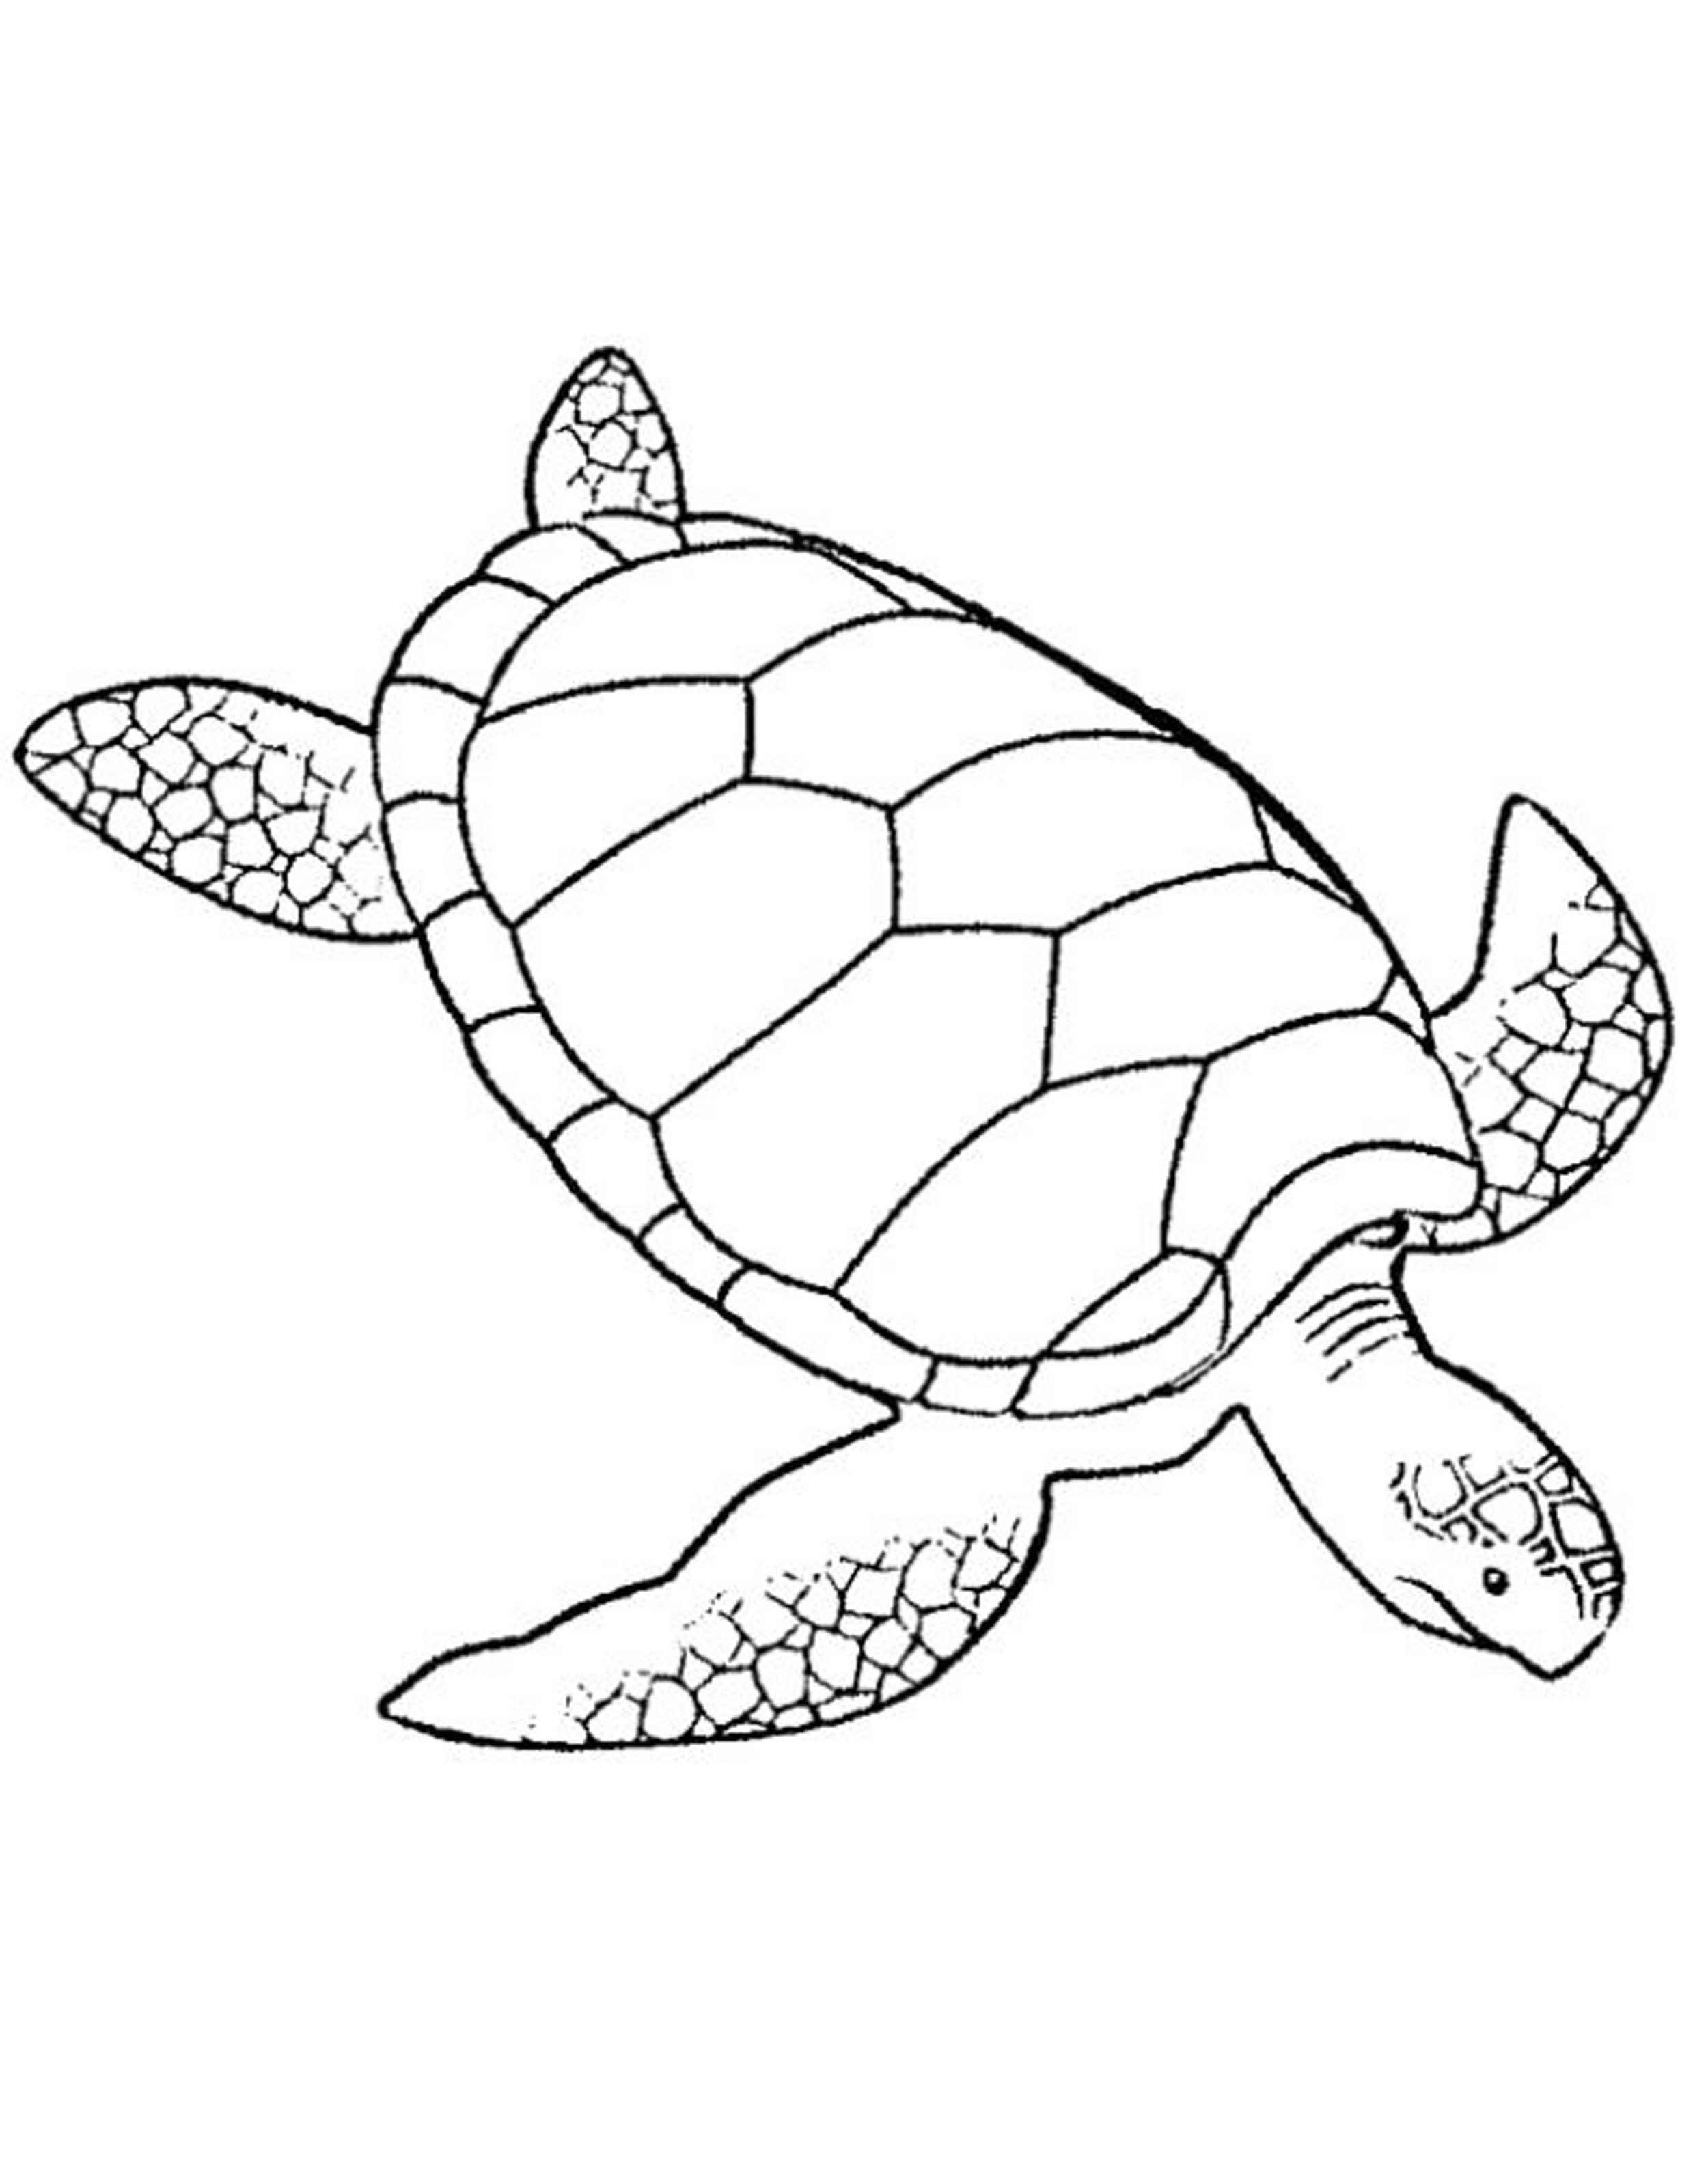 turtle printable coloring pages coloring pages turtles free printable coloring pages turtle printable coloring pages